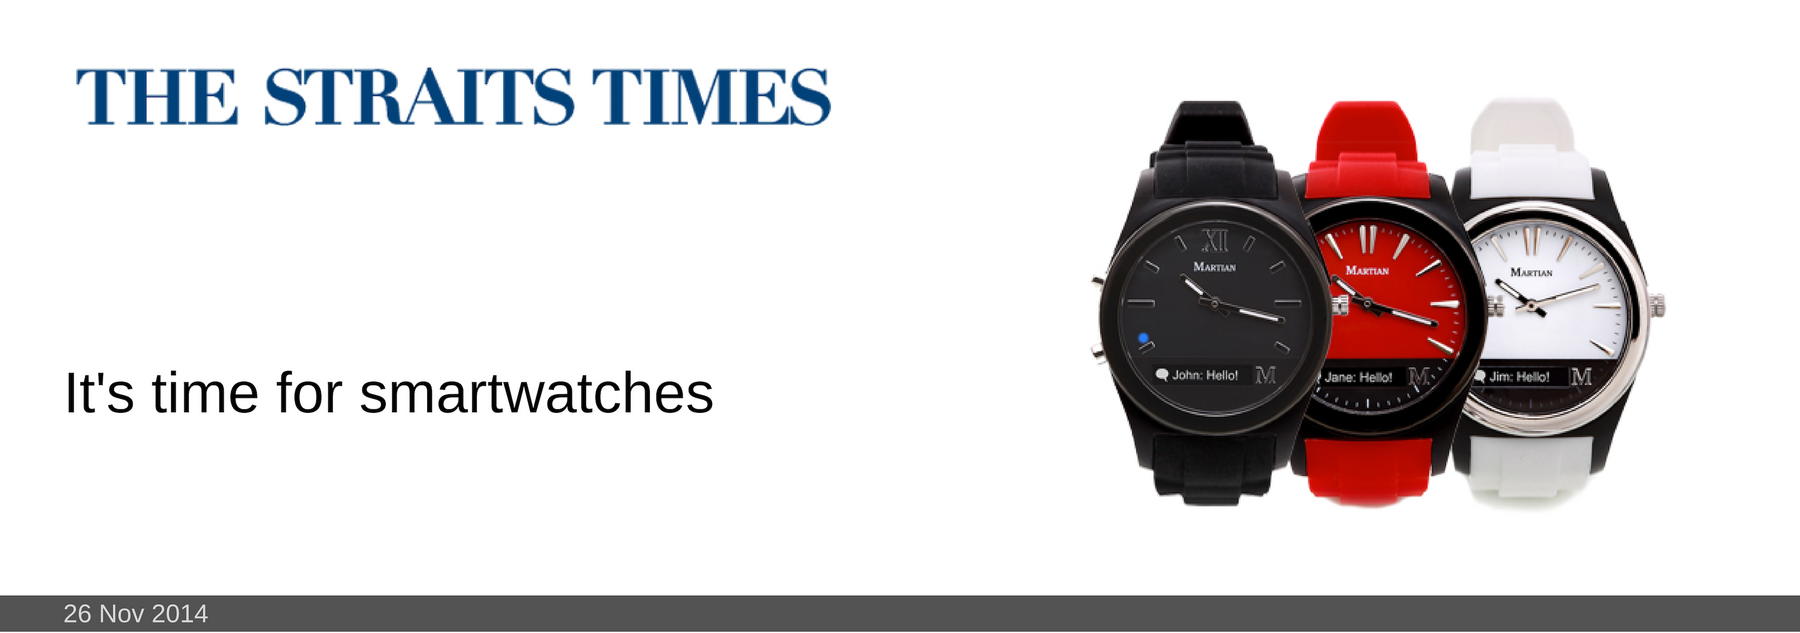 26 NOV 2014: It's time for smartwatches